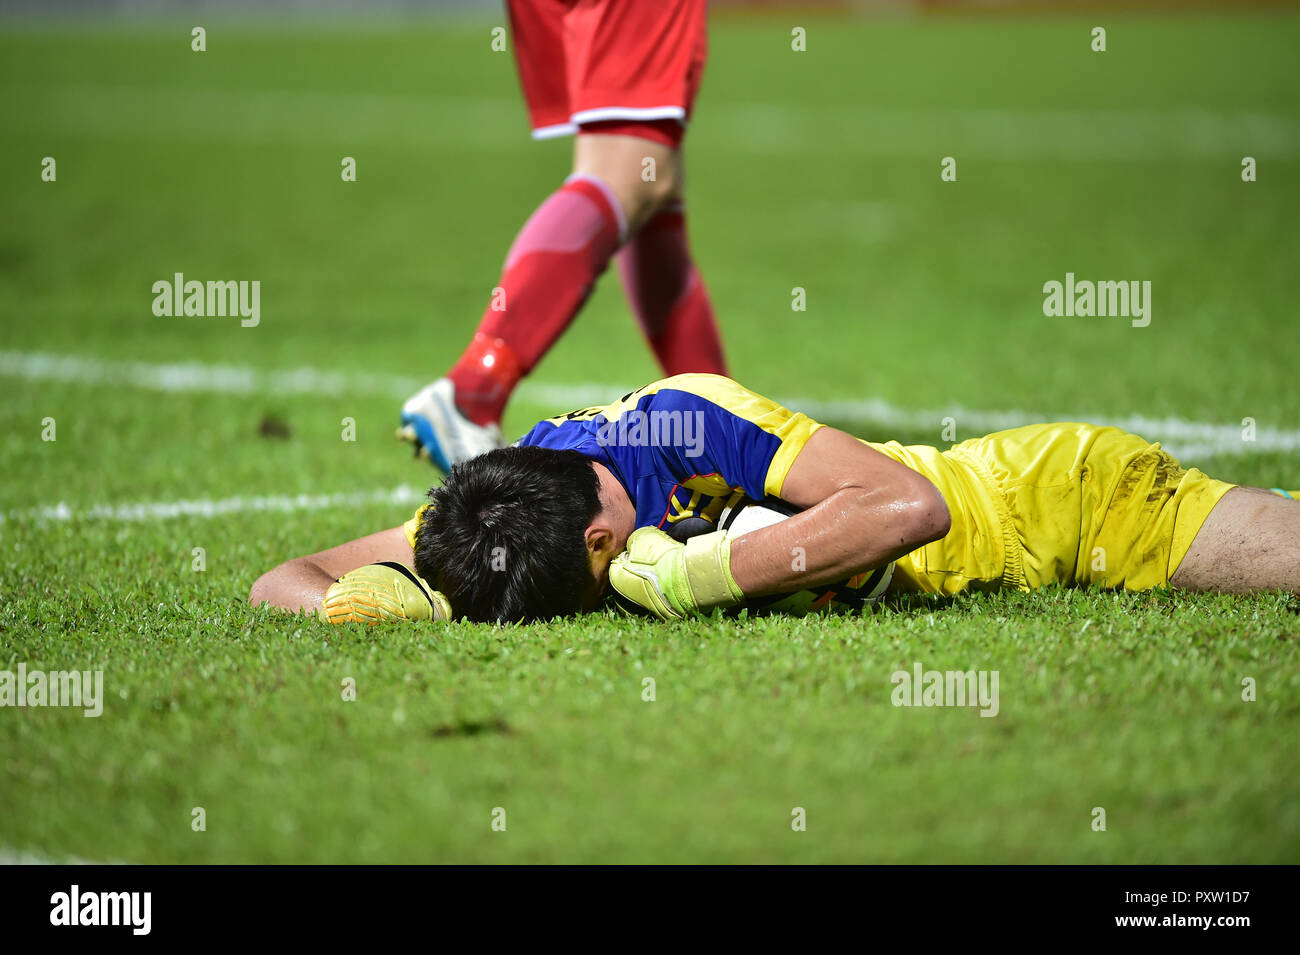 The goalkeeper lies on the ground clutching the ball. - Stock Image